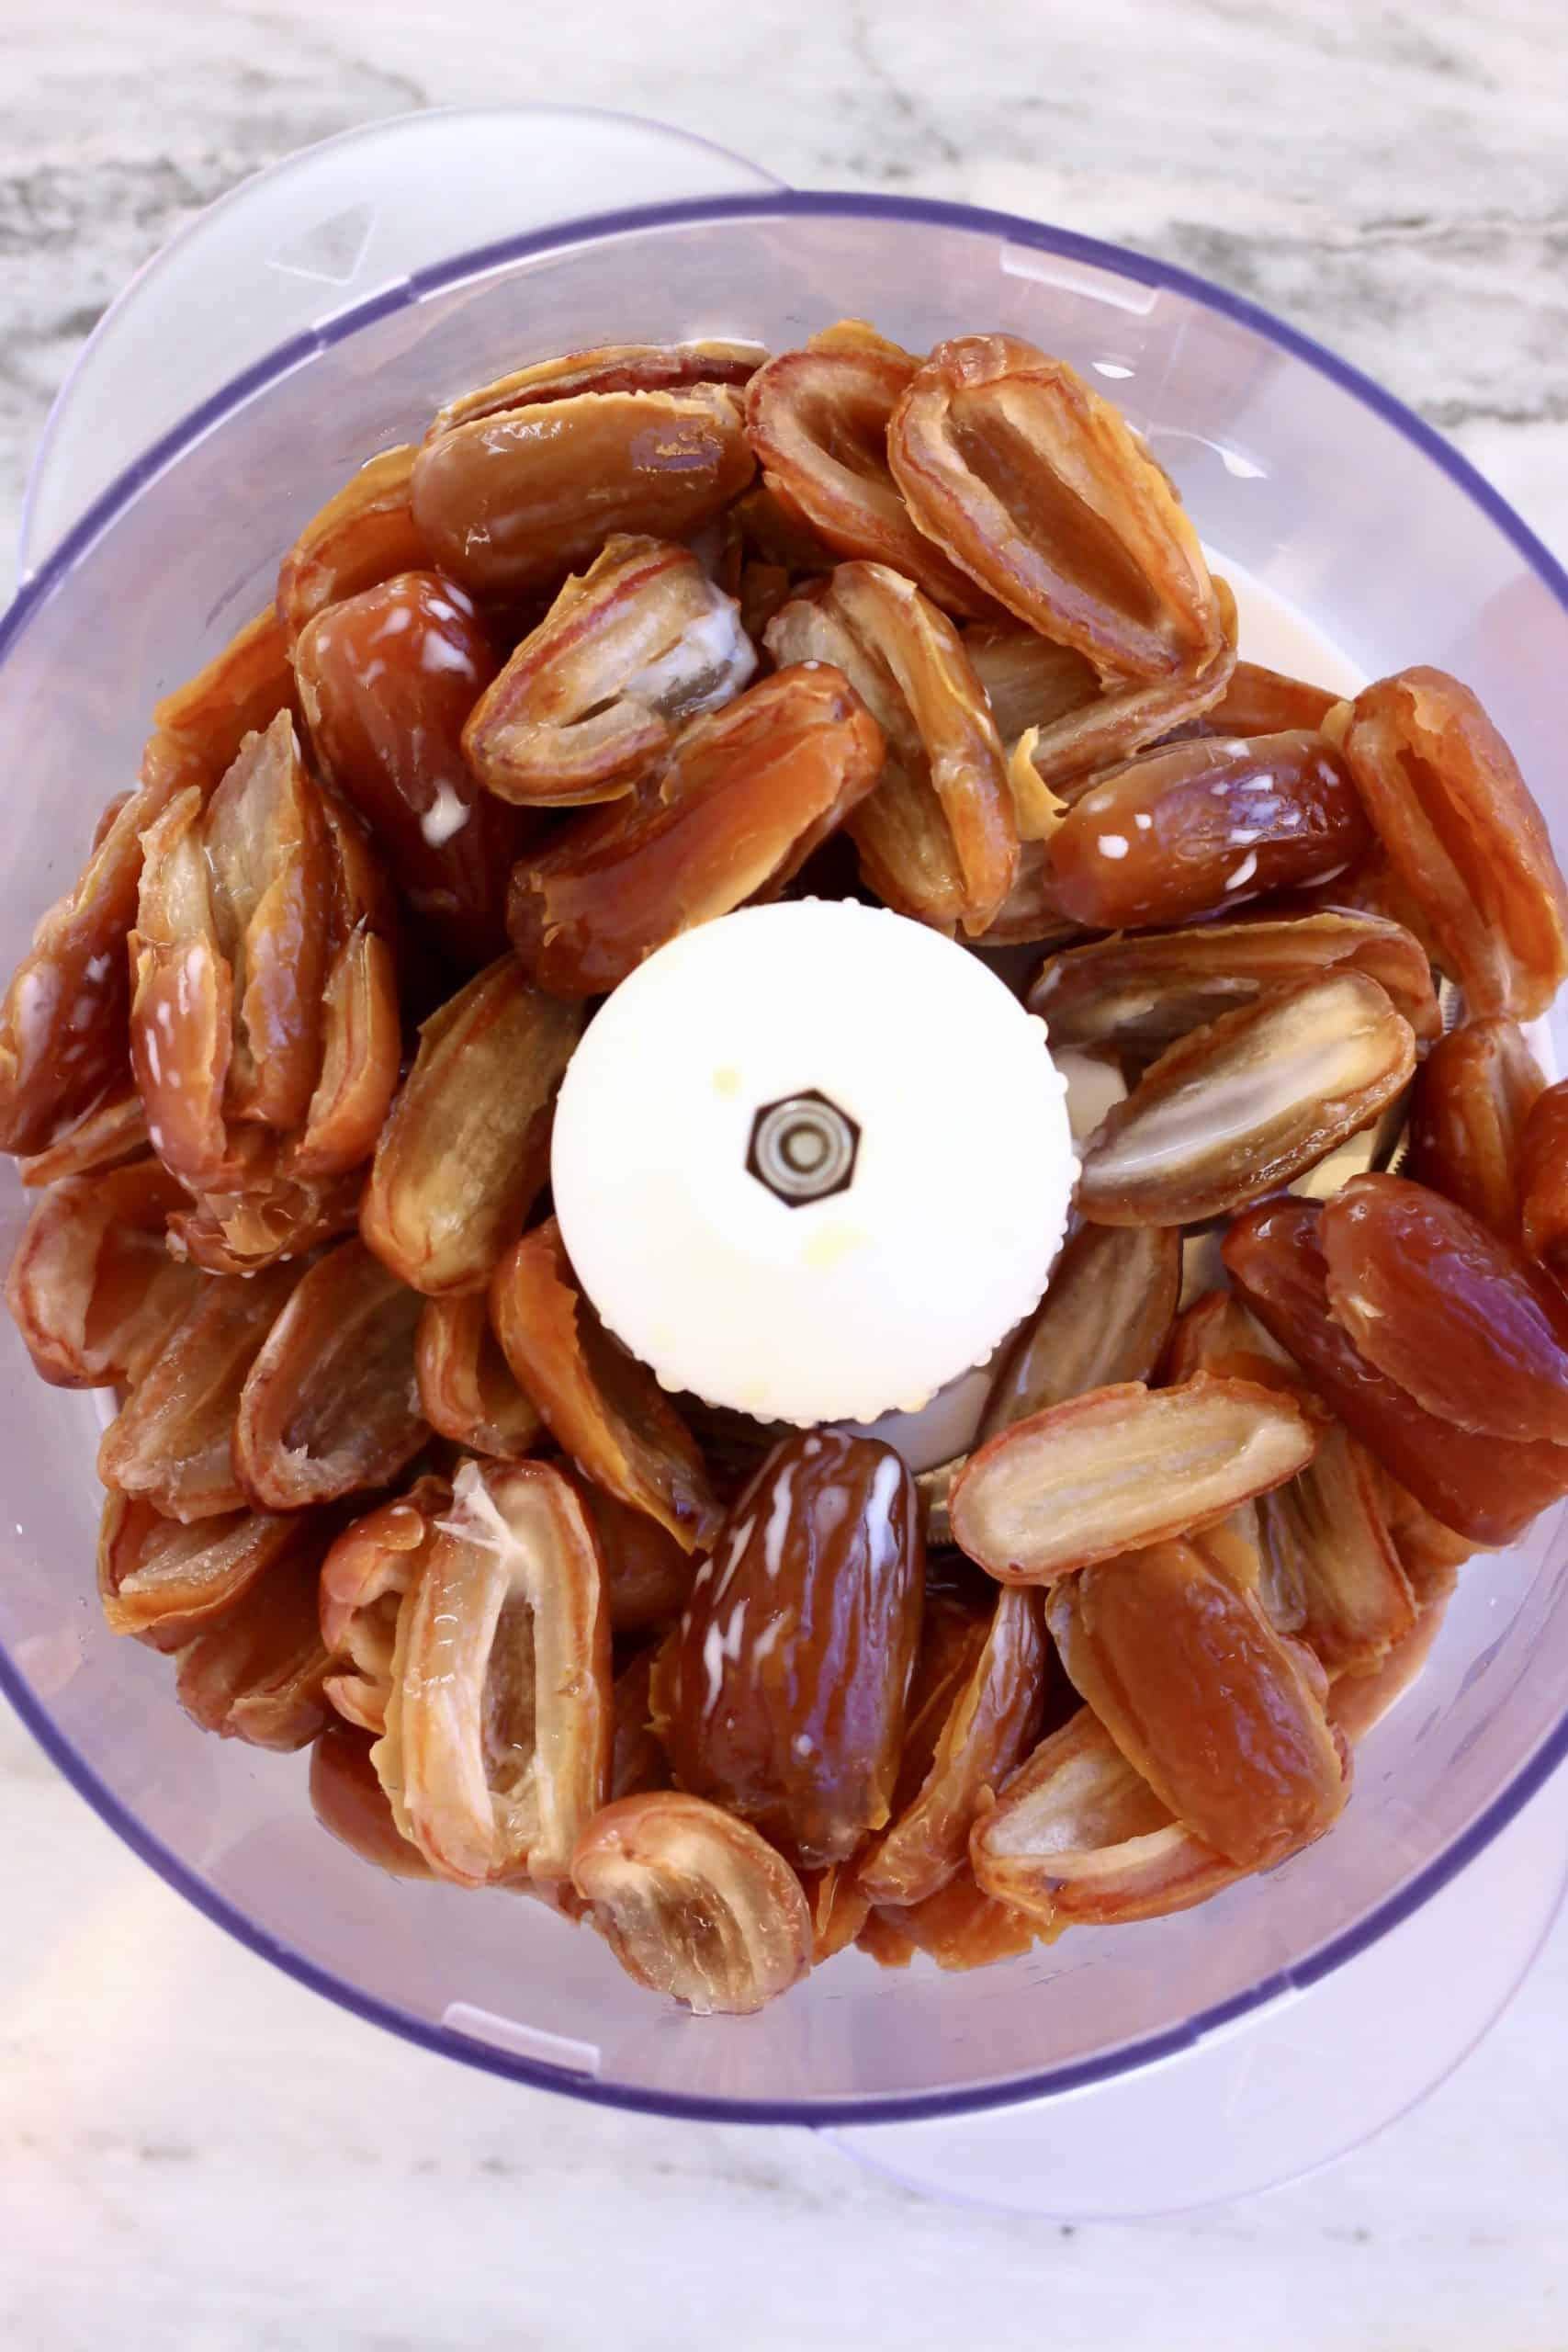 Dates and almond milk in a food processor